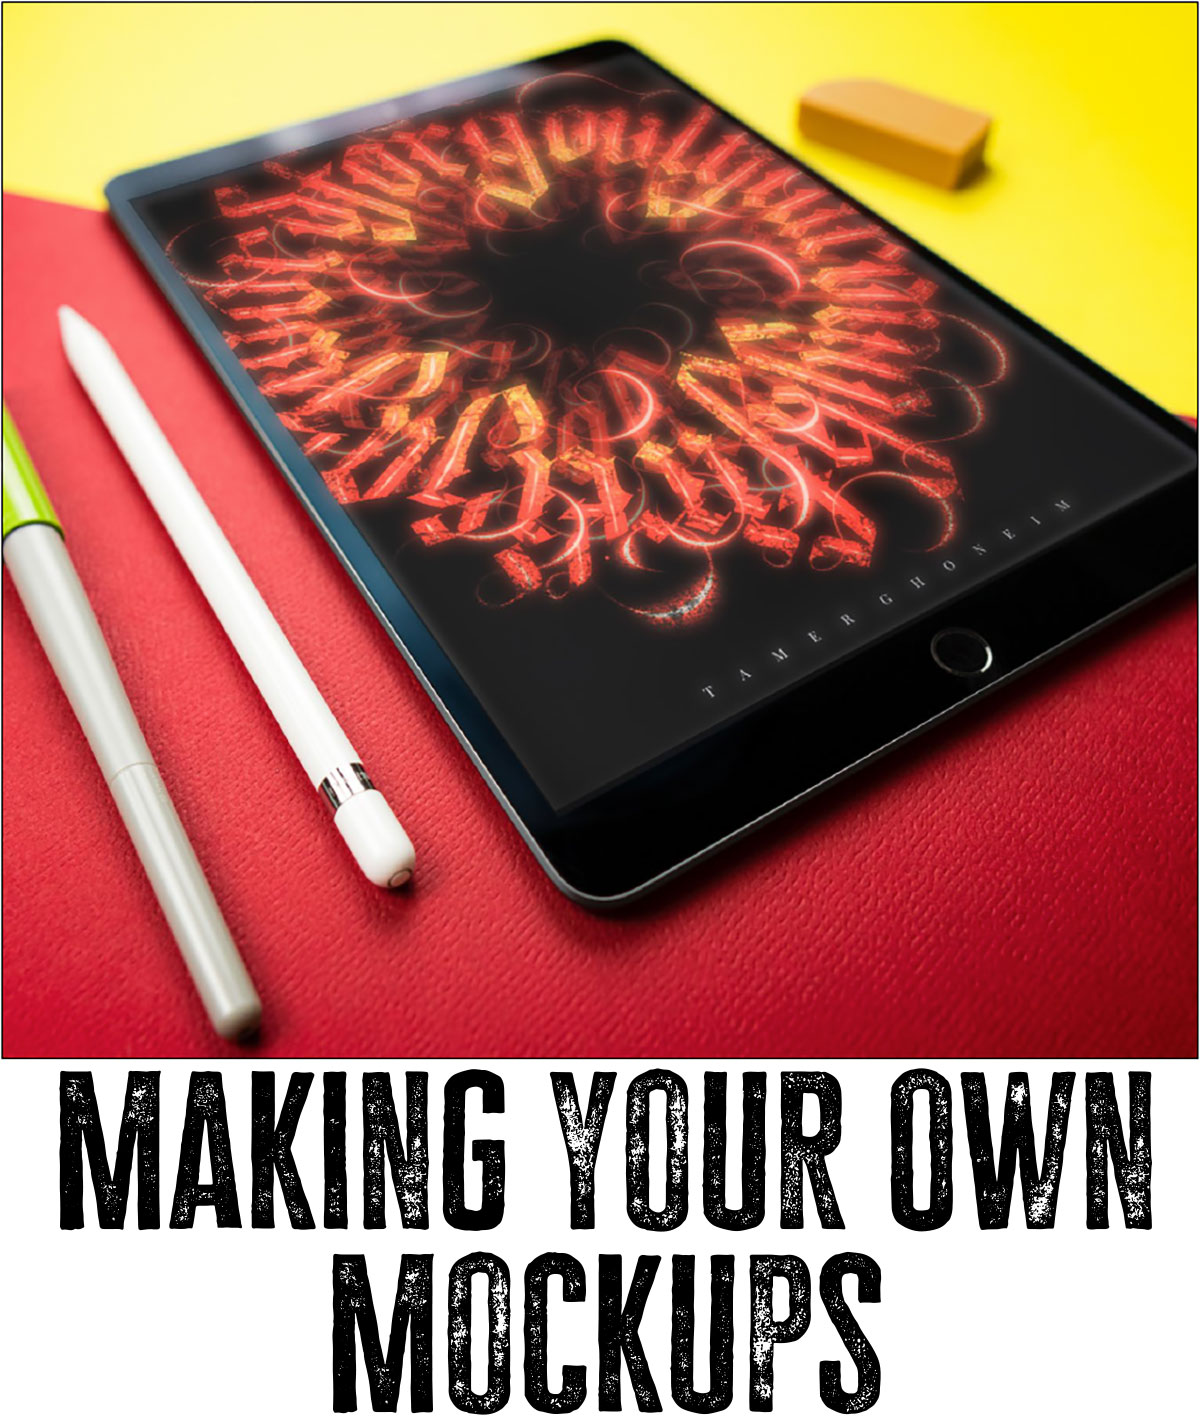 Making Your own Mocki ups with Tamer Ghoneim